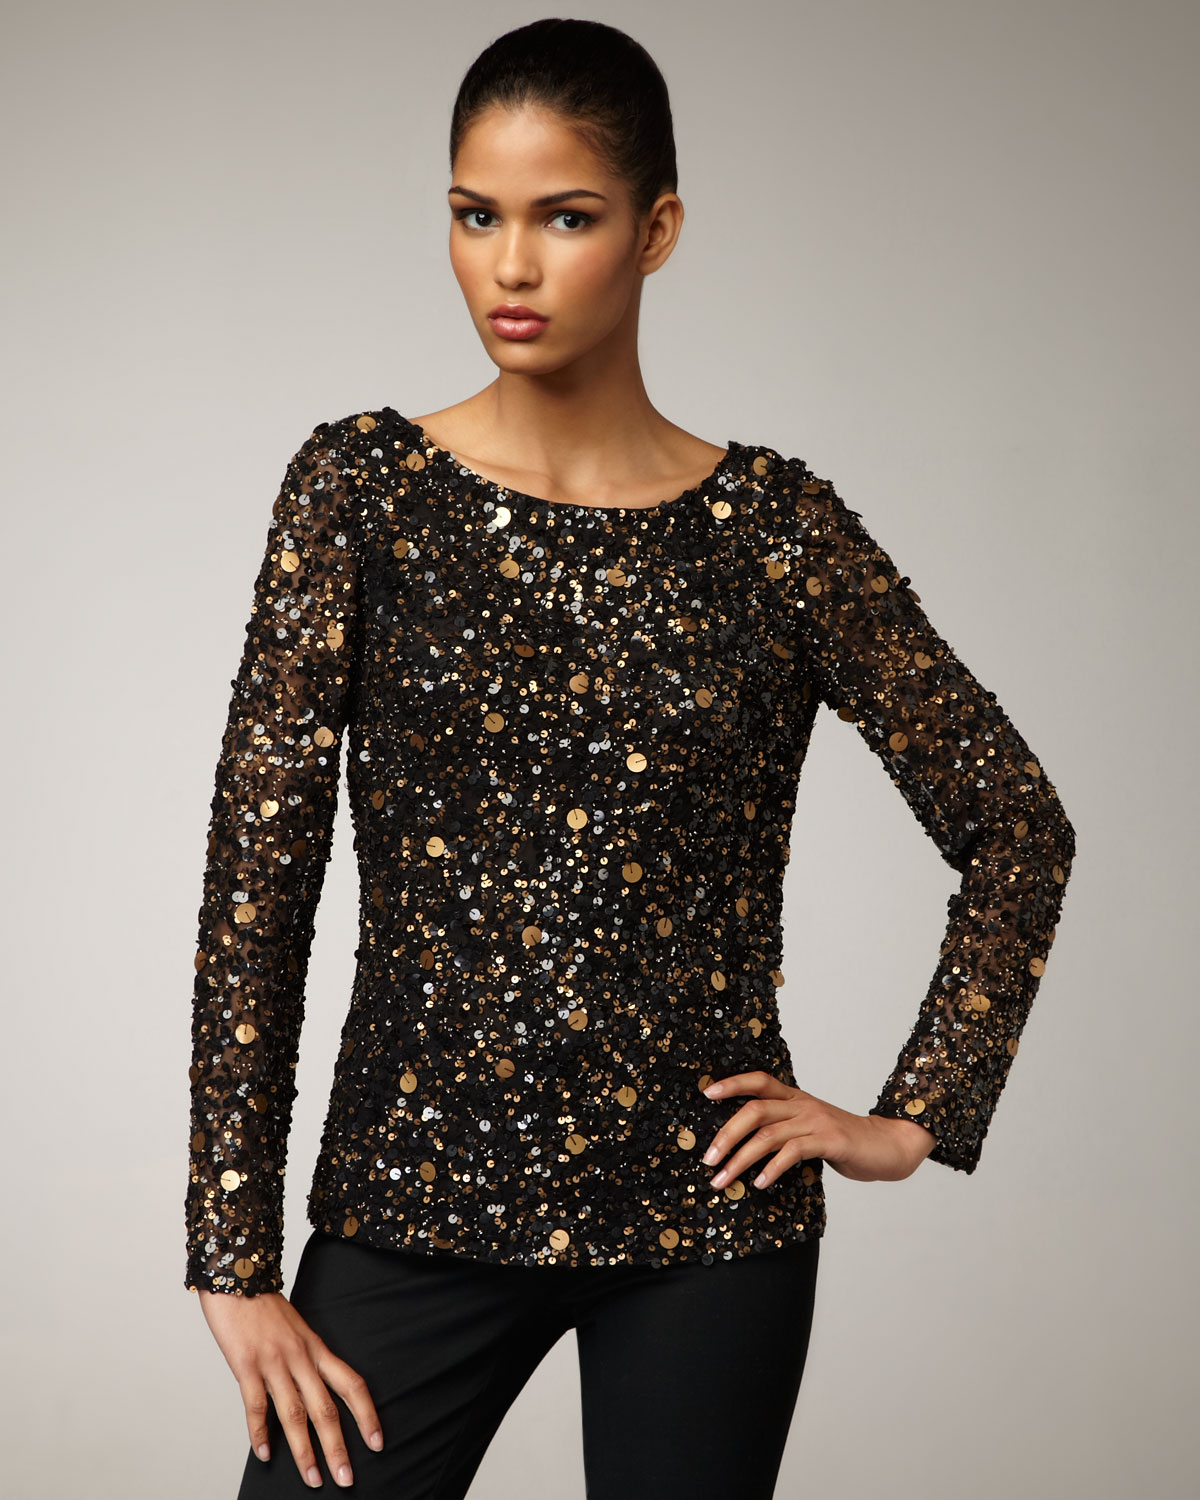 The best thing you can add to a party is a bit of sparkle, so check out our collection of women's sequin dresses, skirts & tops. Our party dresses include black dresses, white dresses, and sequin dresses.